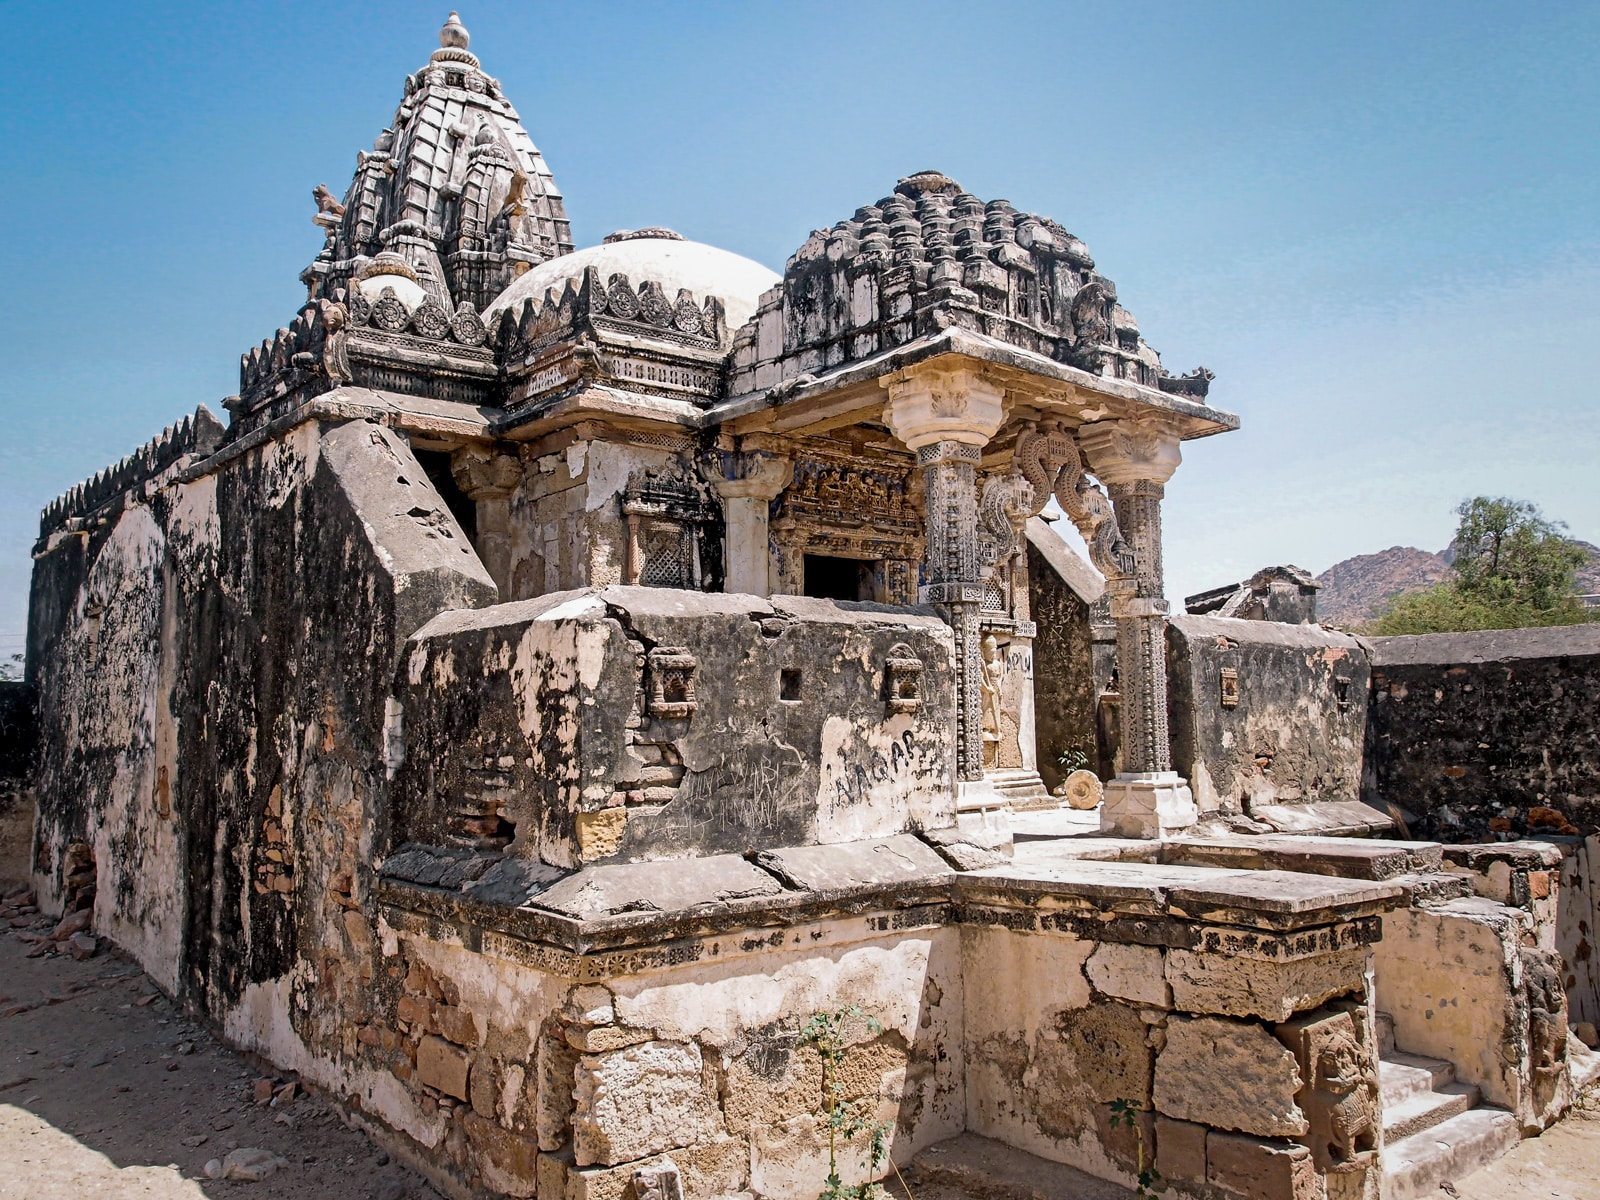 Sindh travel guide - Jain temple in Nagarparkar, Pakistan - Lost With Purpose travel blog